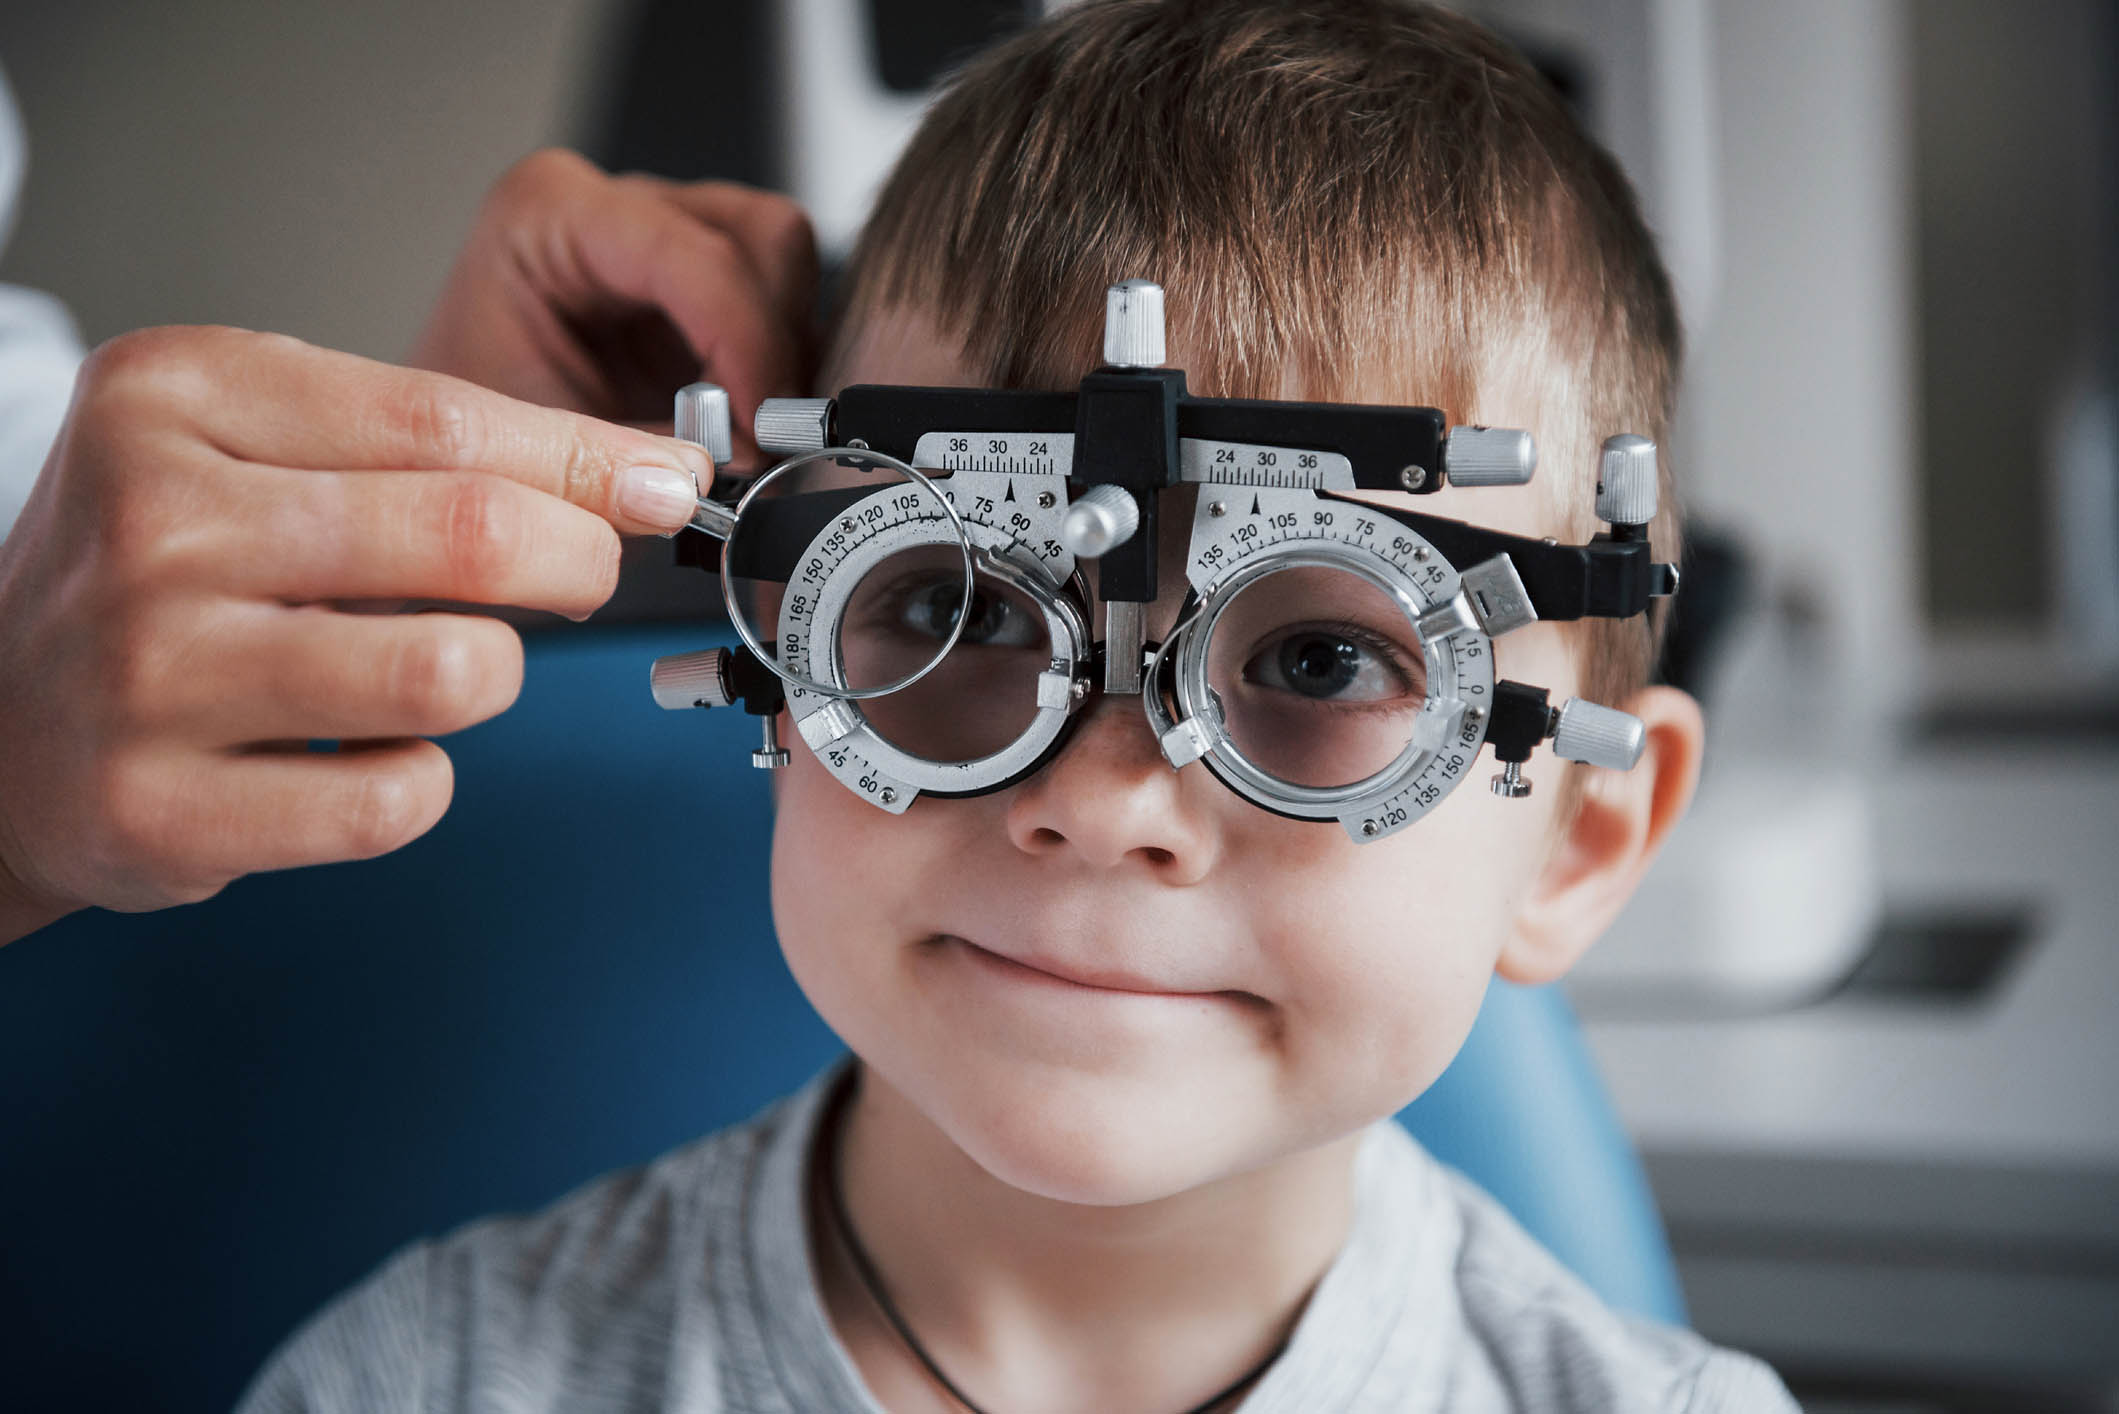 Tuning the intrument. Little boy with phoropter having testing his eyes in the doctor's office